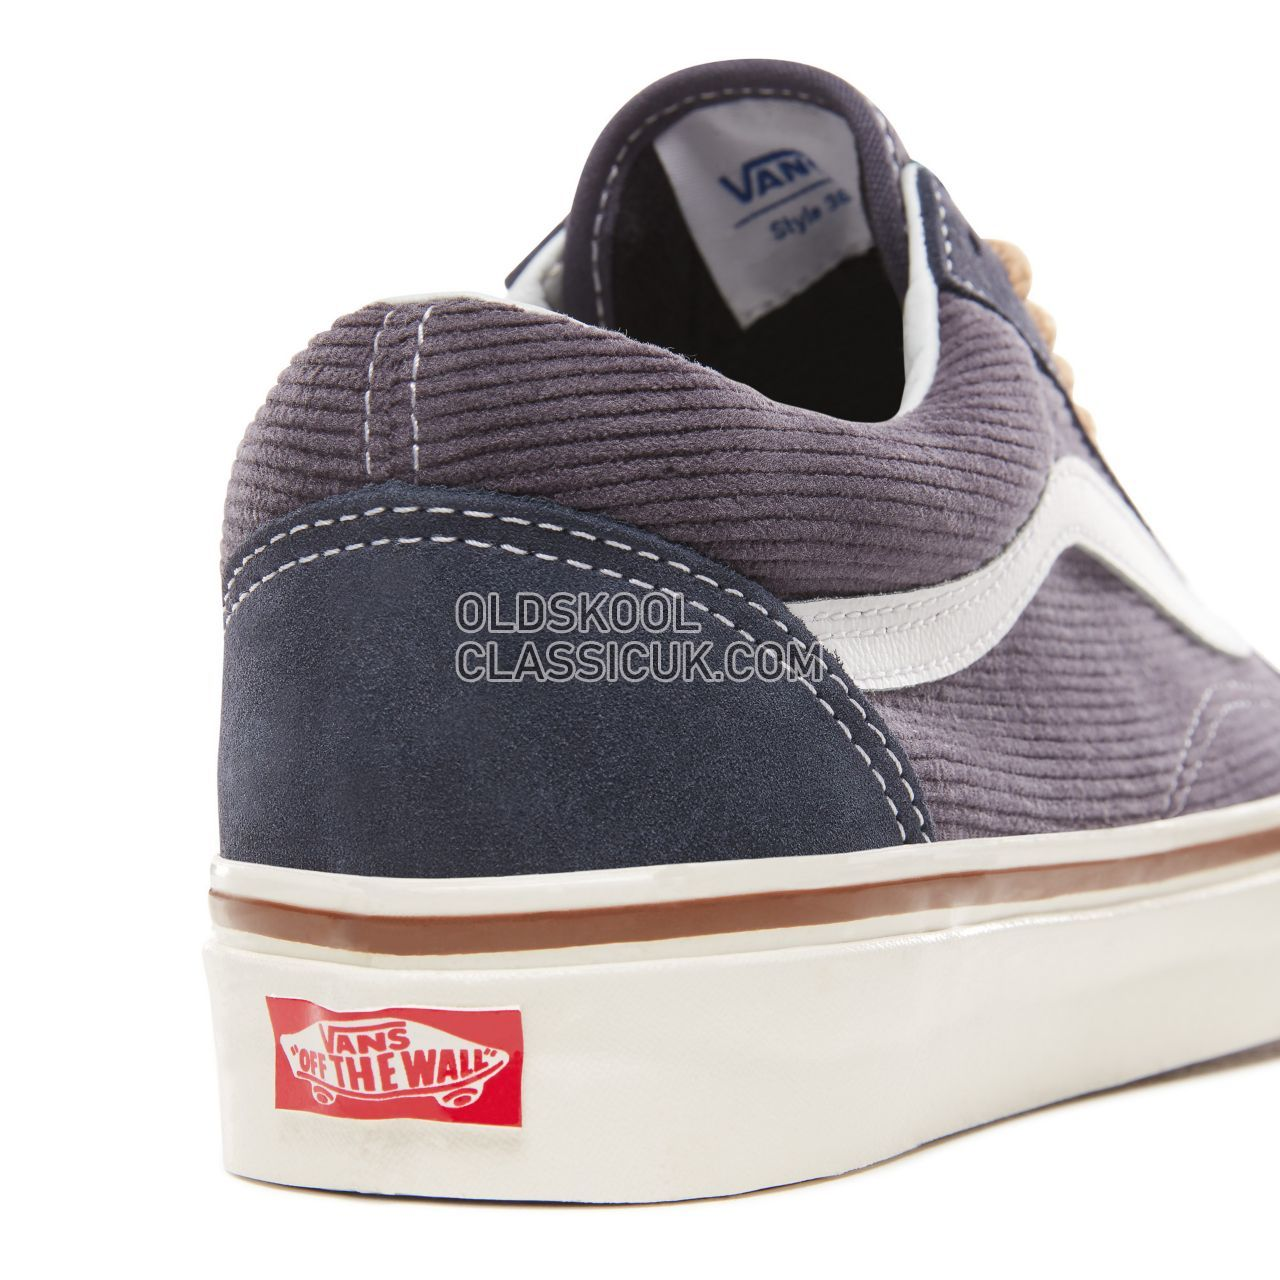 Vans Anaheim Factory Old Skool 36 Dx Sneakers Mens Womens Unisex (Anaheim Factory) Og NavySuedeCorduroy VN0A38G2UPH Shoes £53